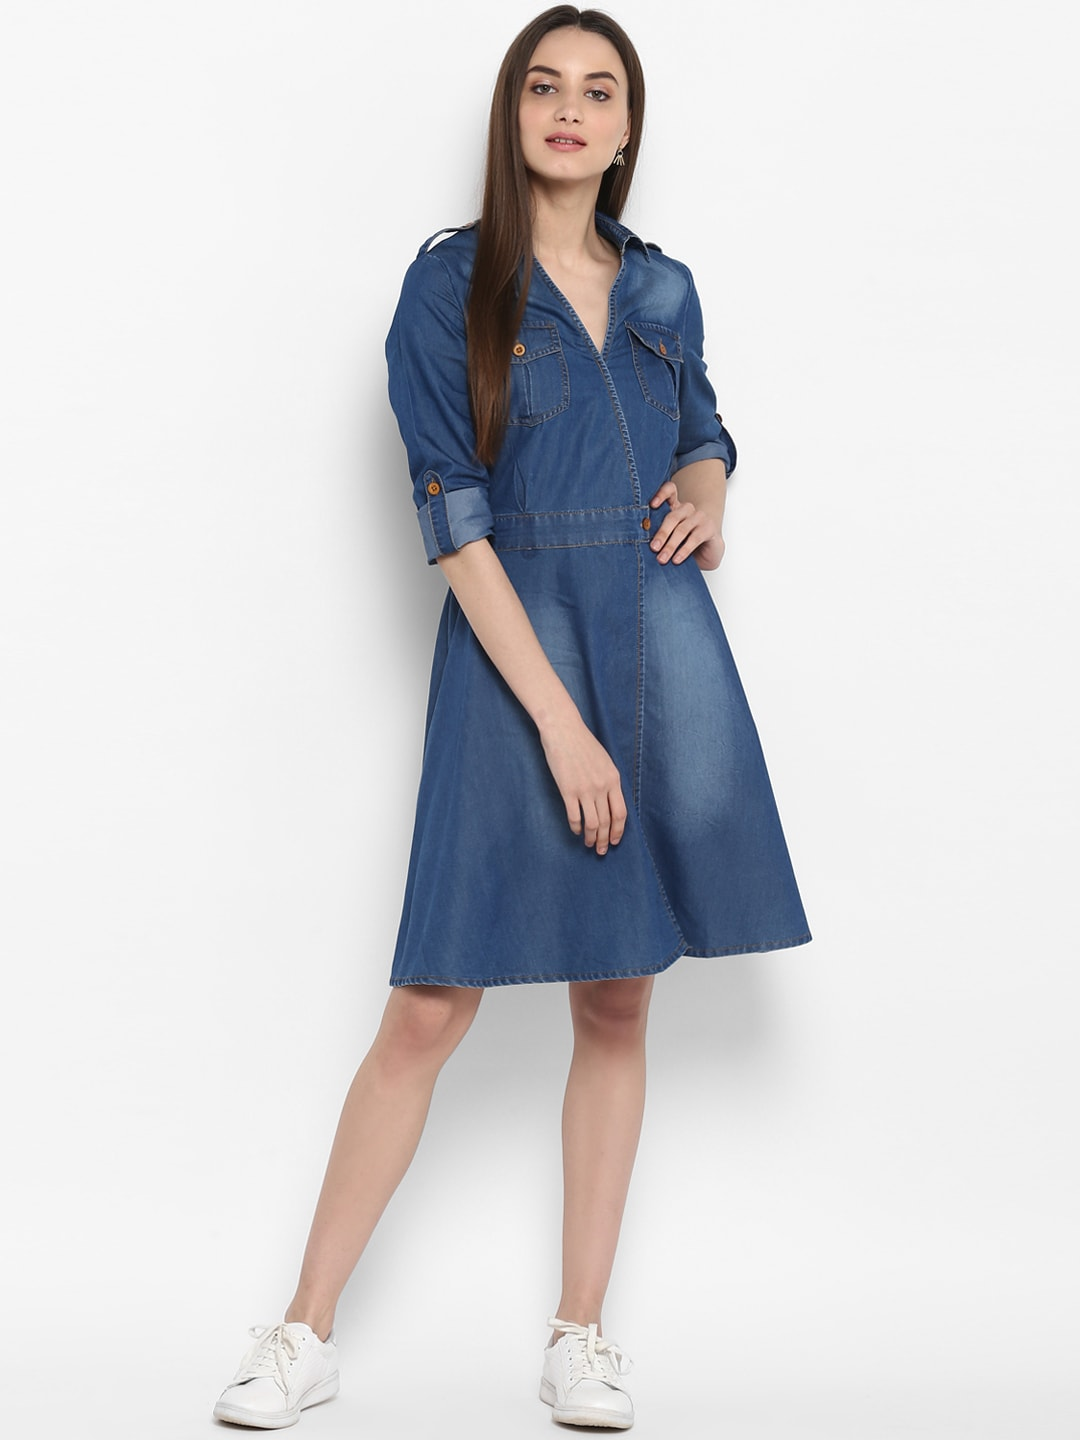 f39e9d21565 Blue Dungarees Dresses - Buy Blue Dungarees Dresses online in India